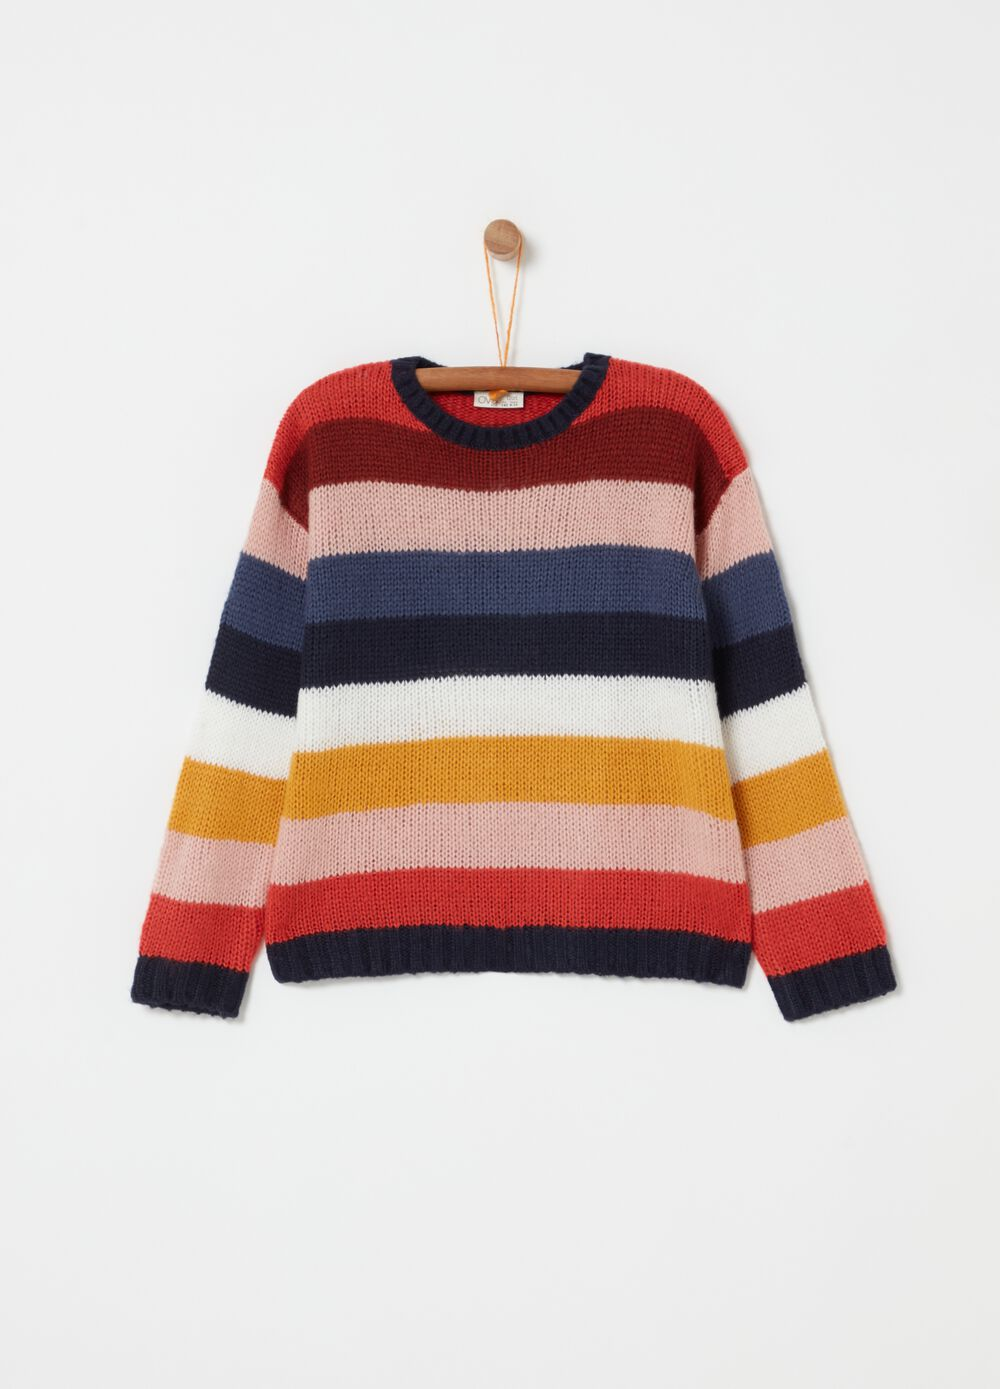 Top with round neck and striped pattern